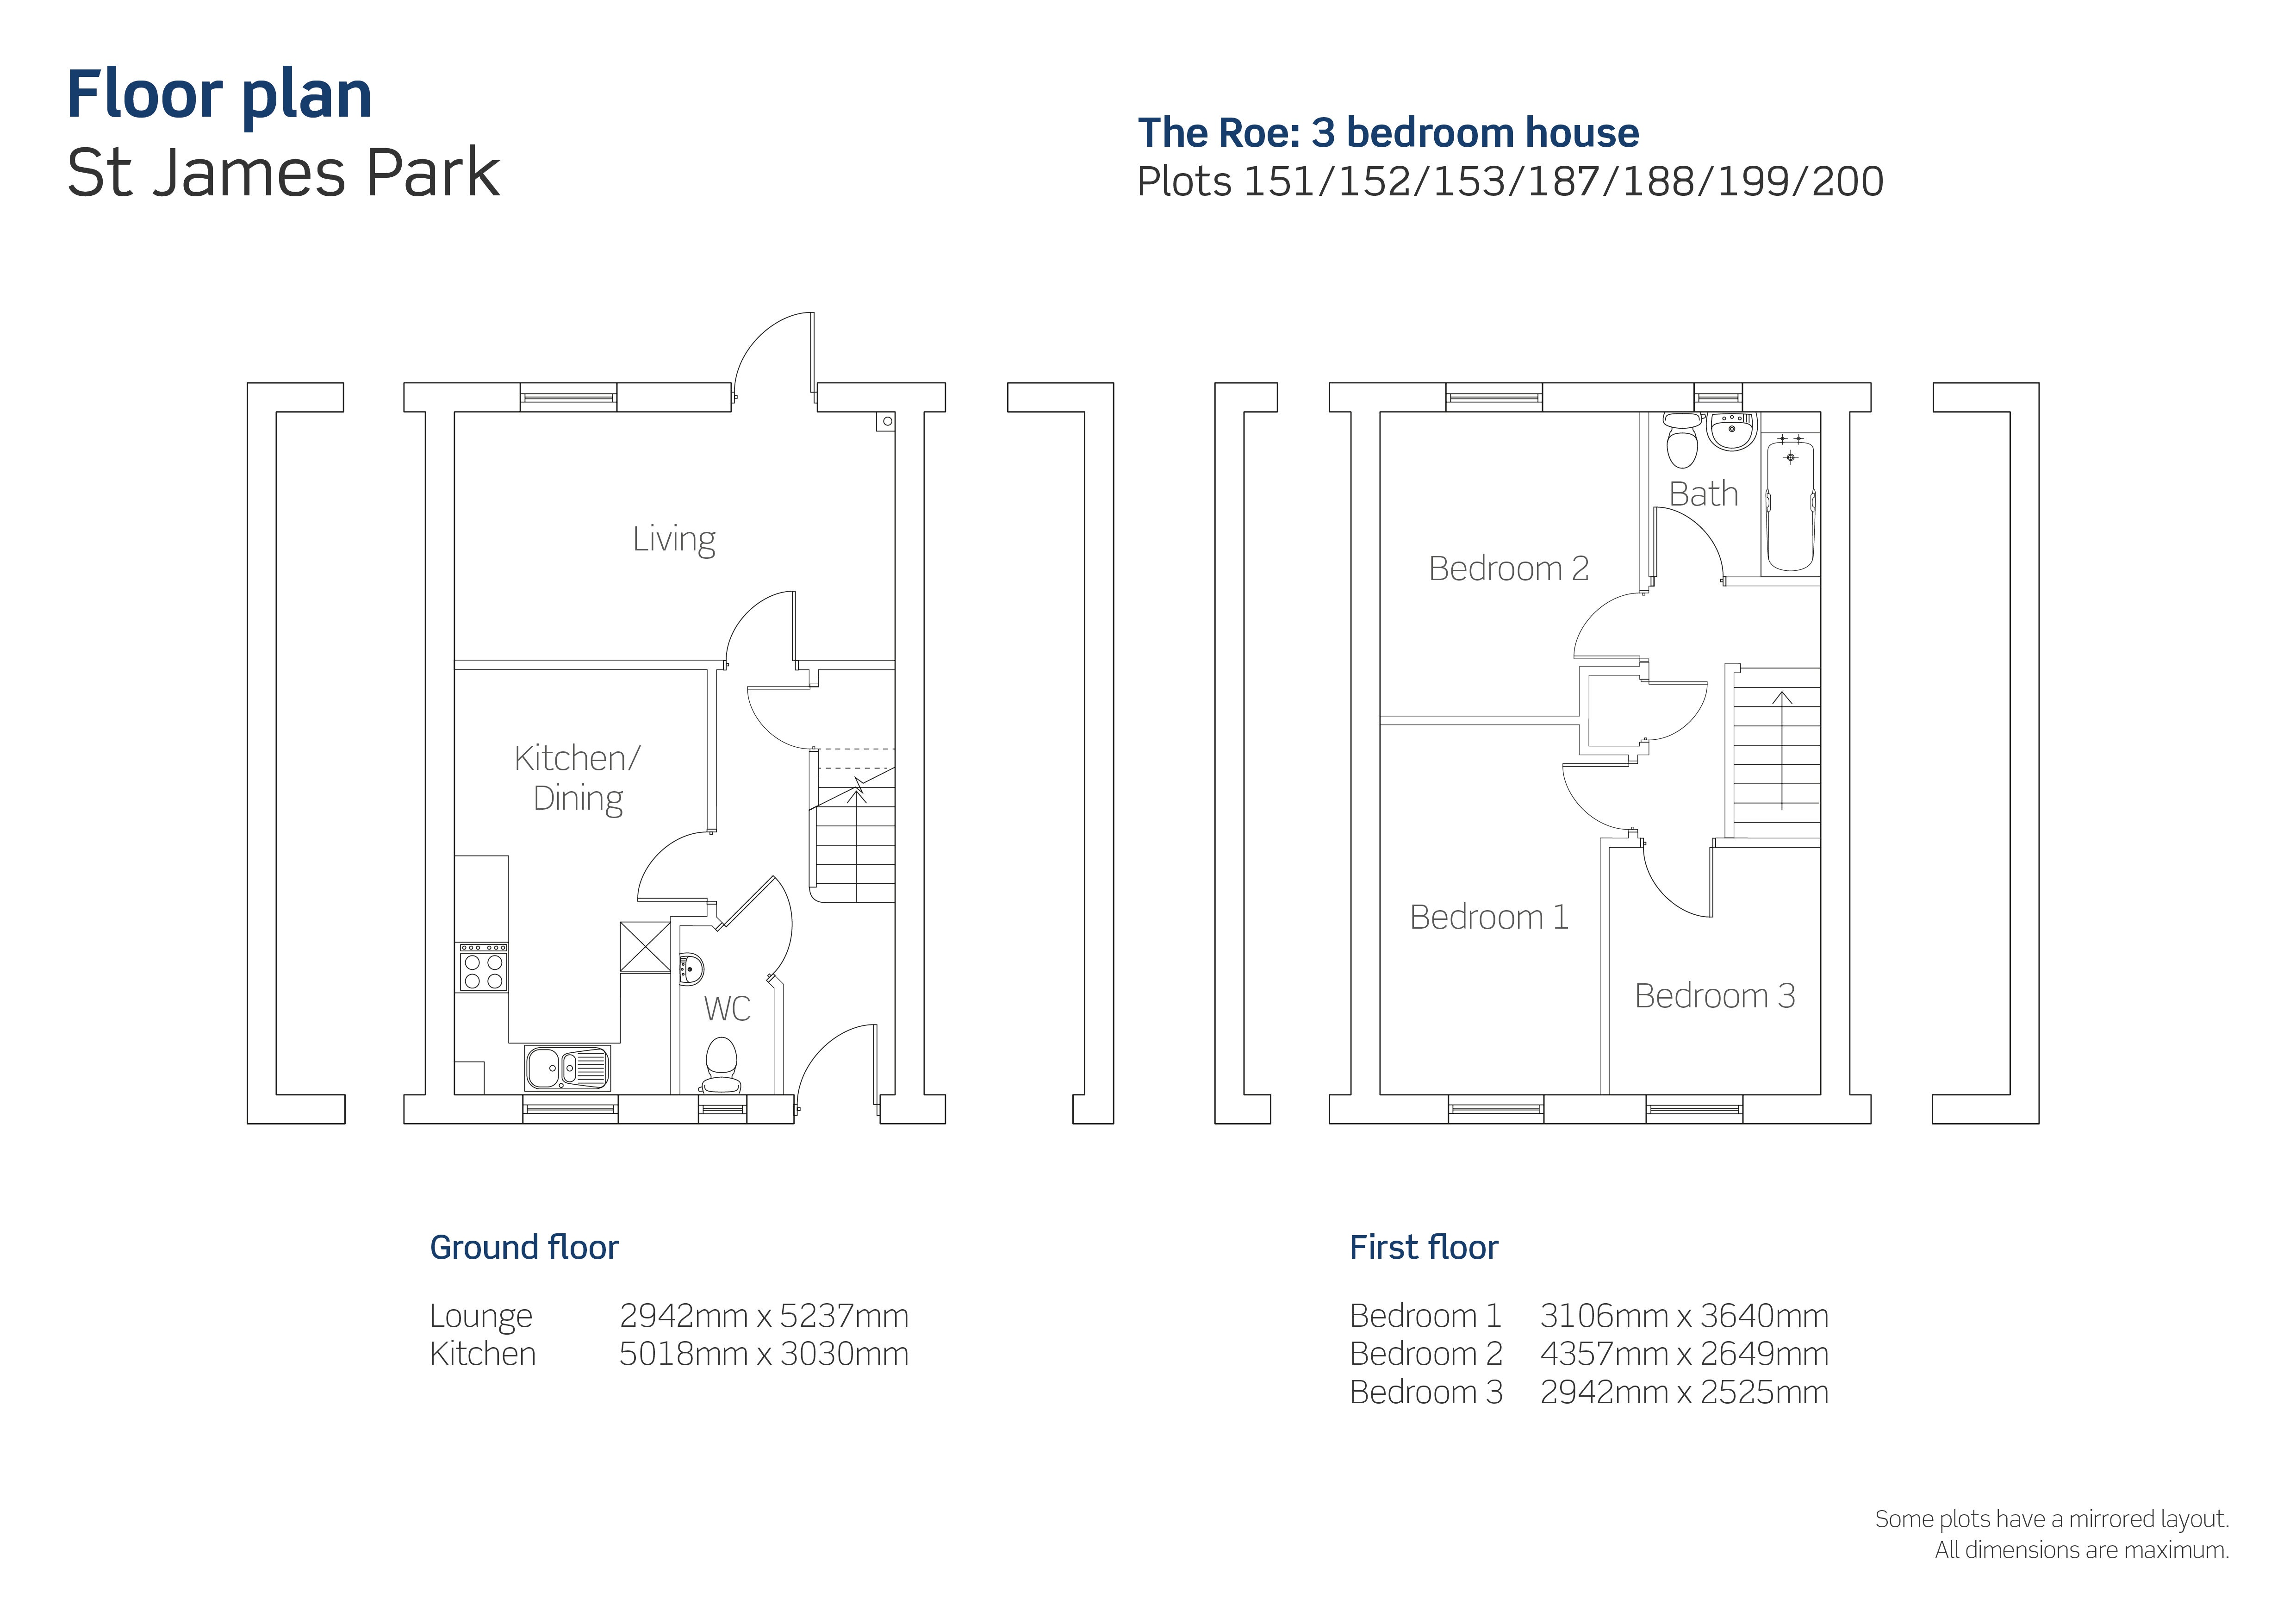 St James Park floor plan for the Roe house type